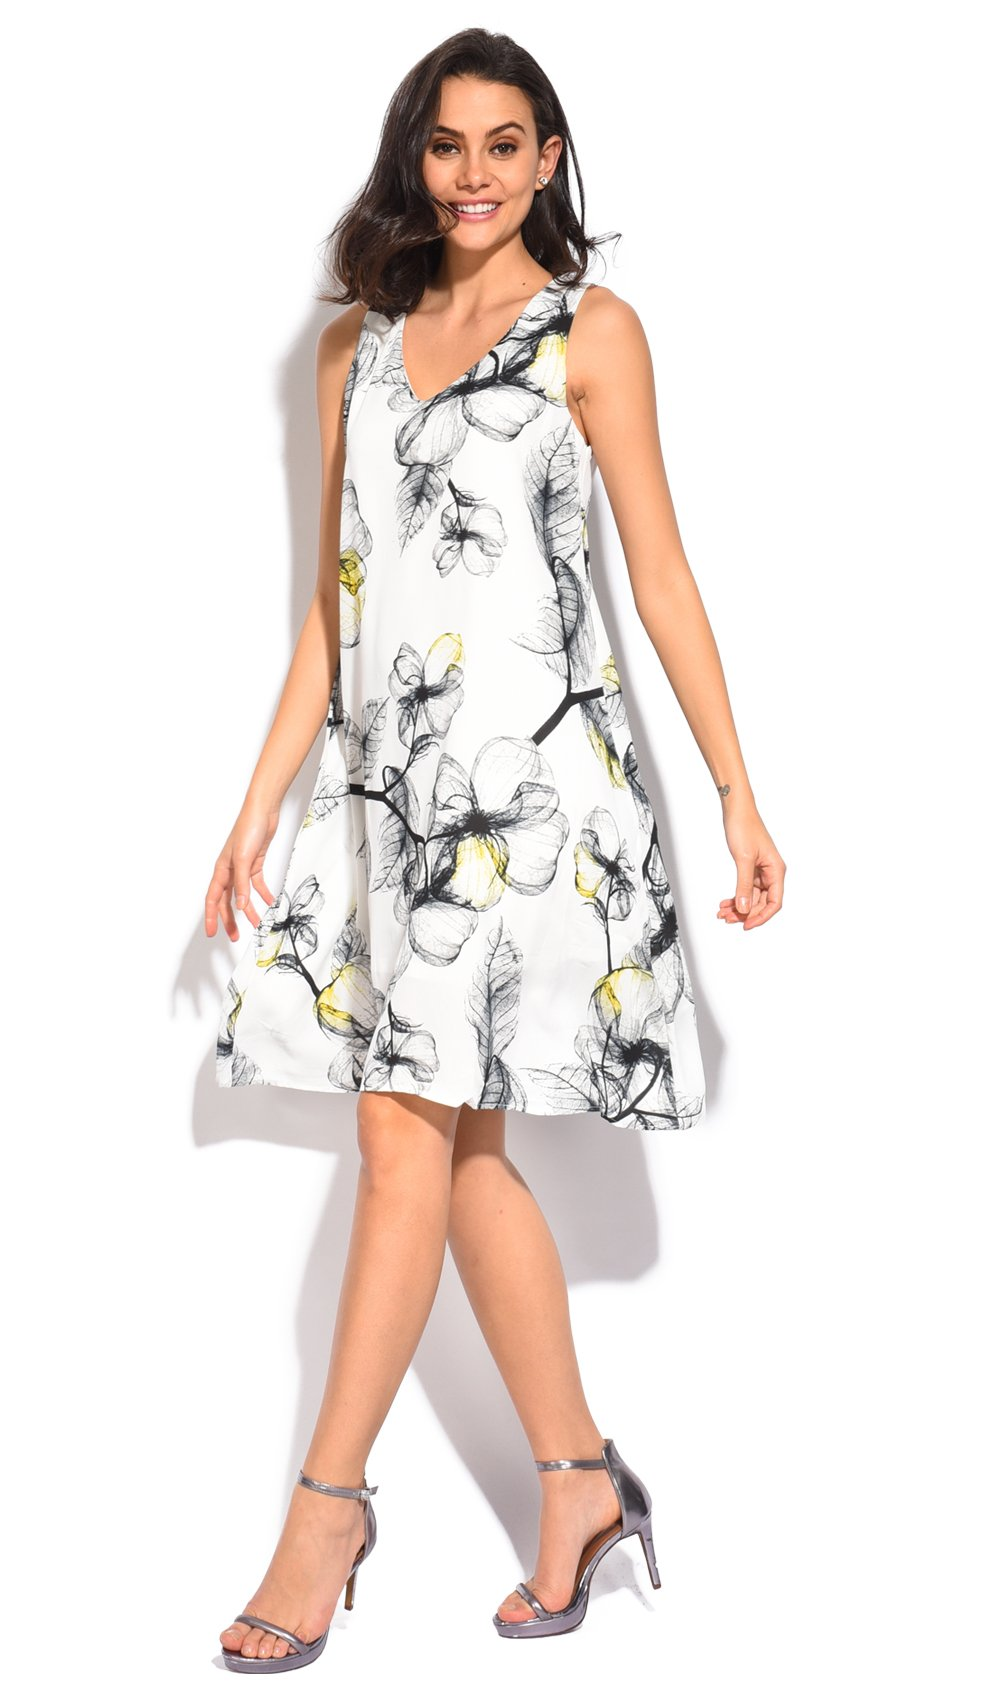 MID-LENGHT DRESS WITH V-NECK AND BI-COLORS FLORAL PRINT